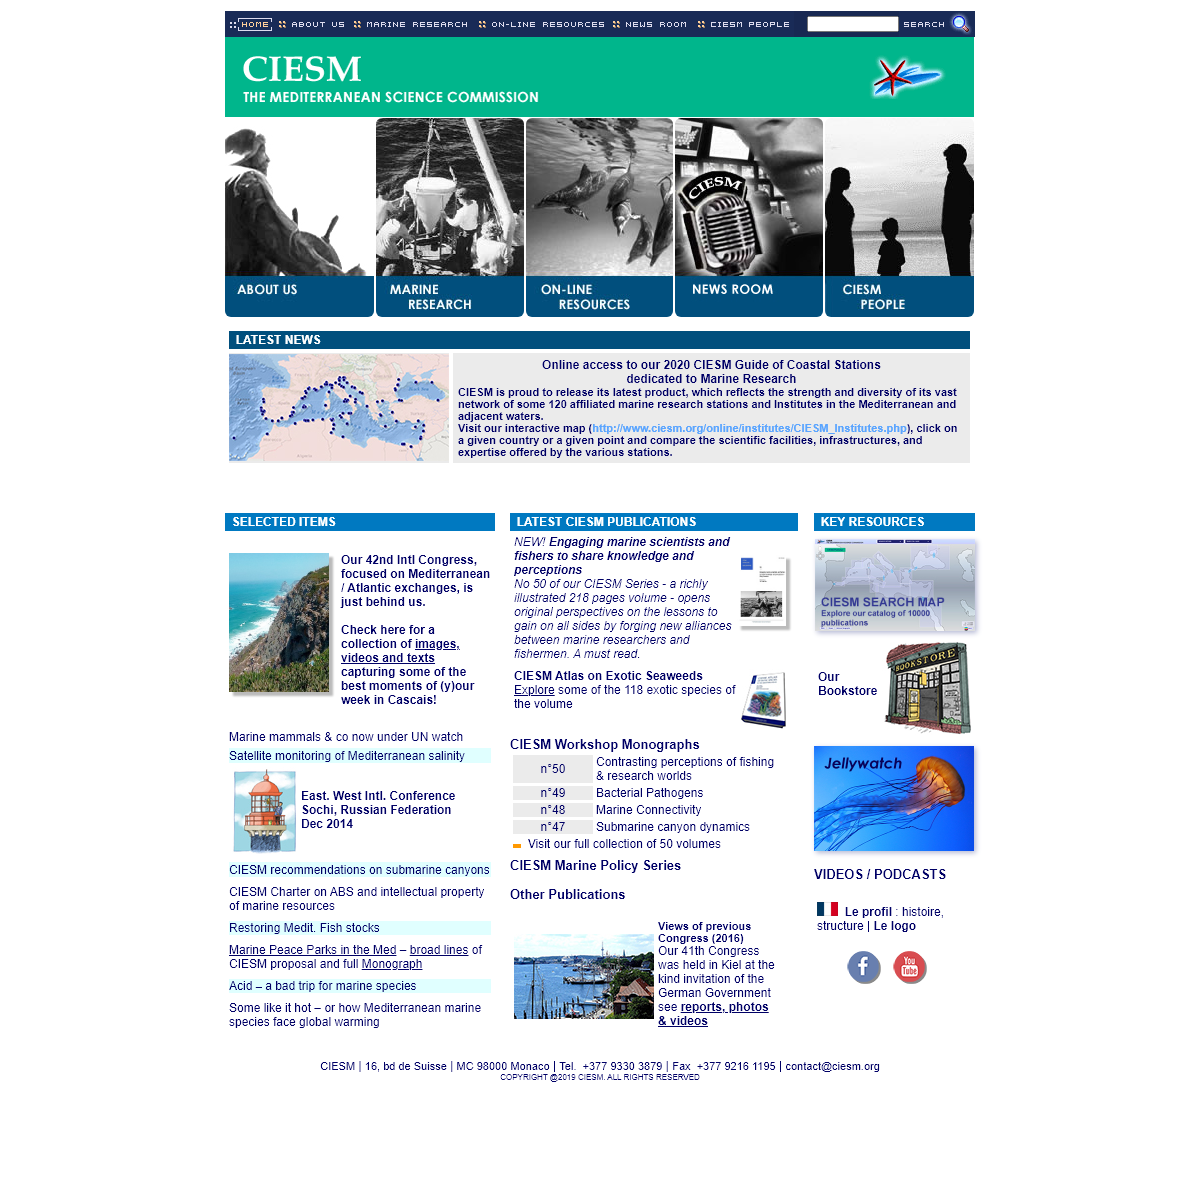 CIESM - The Mediterranean Science Commission